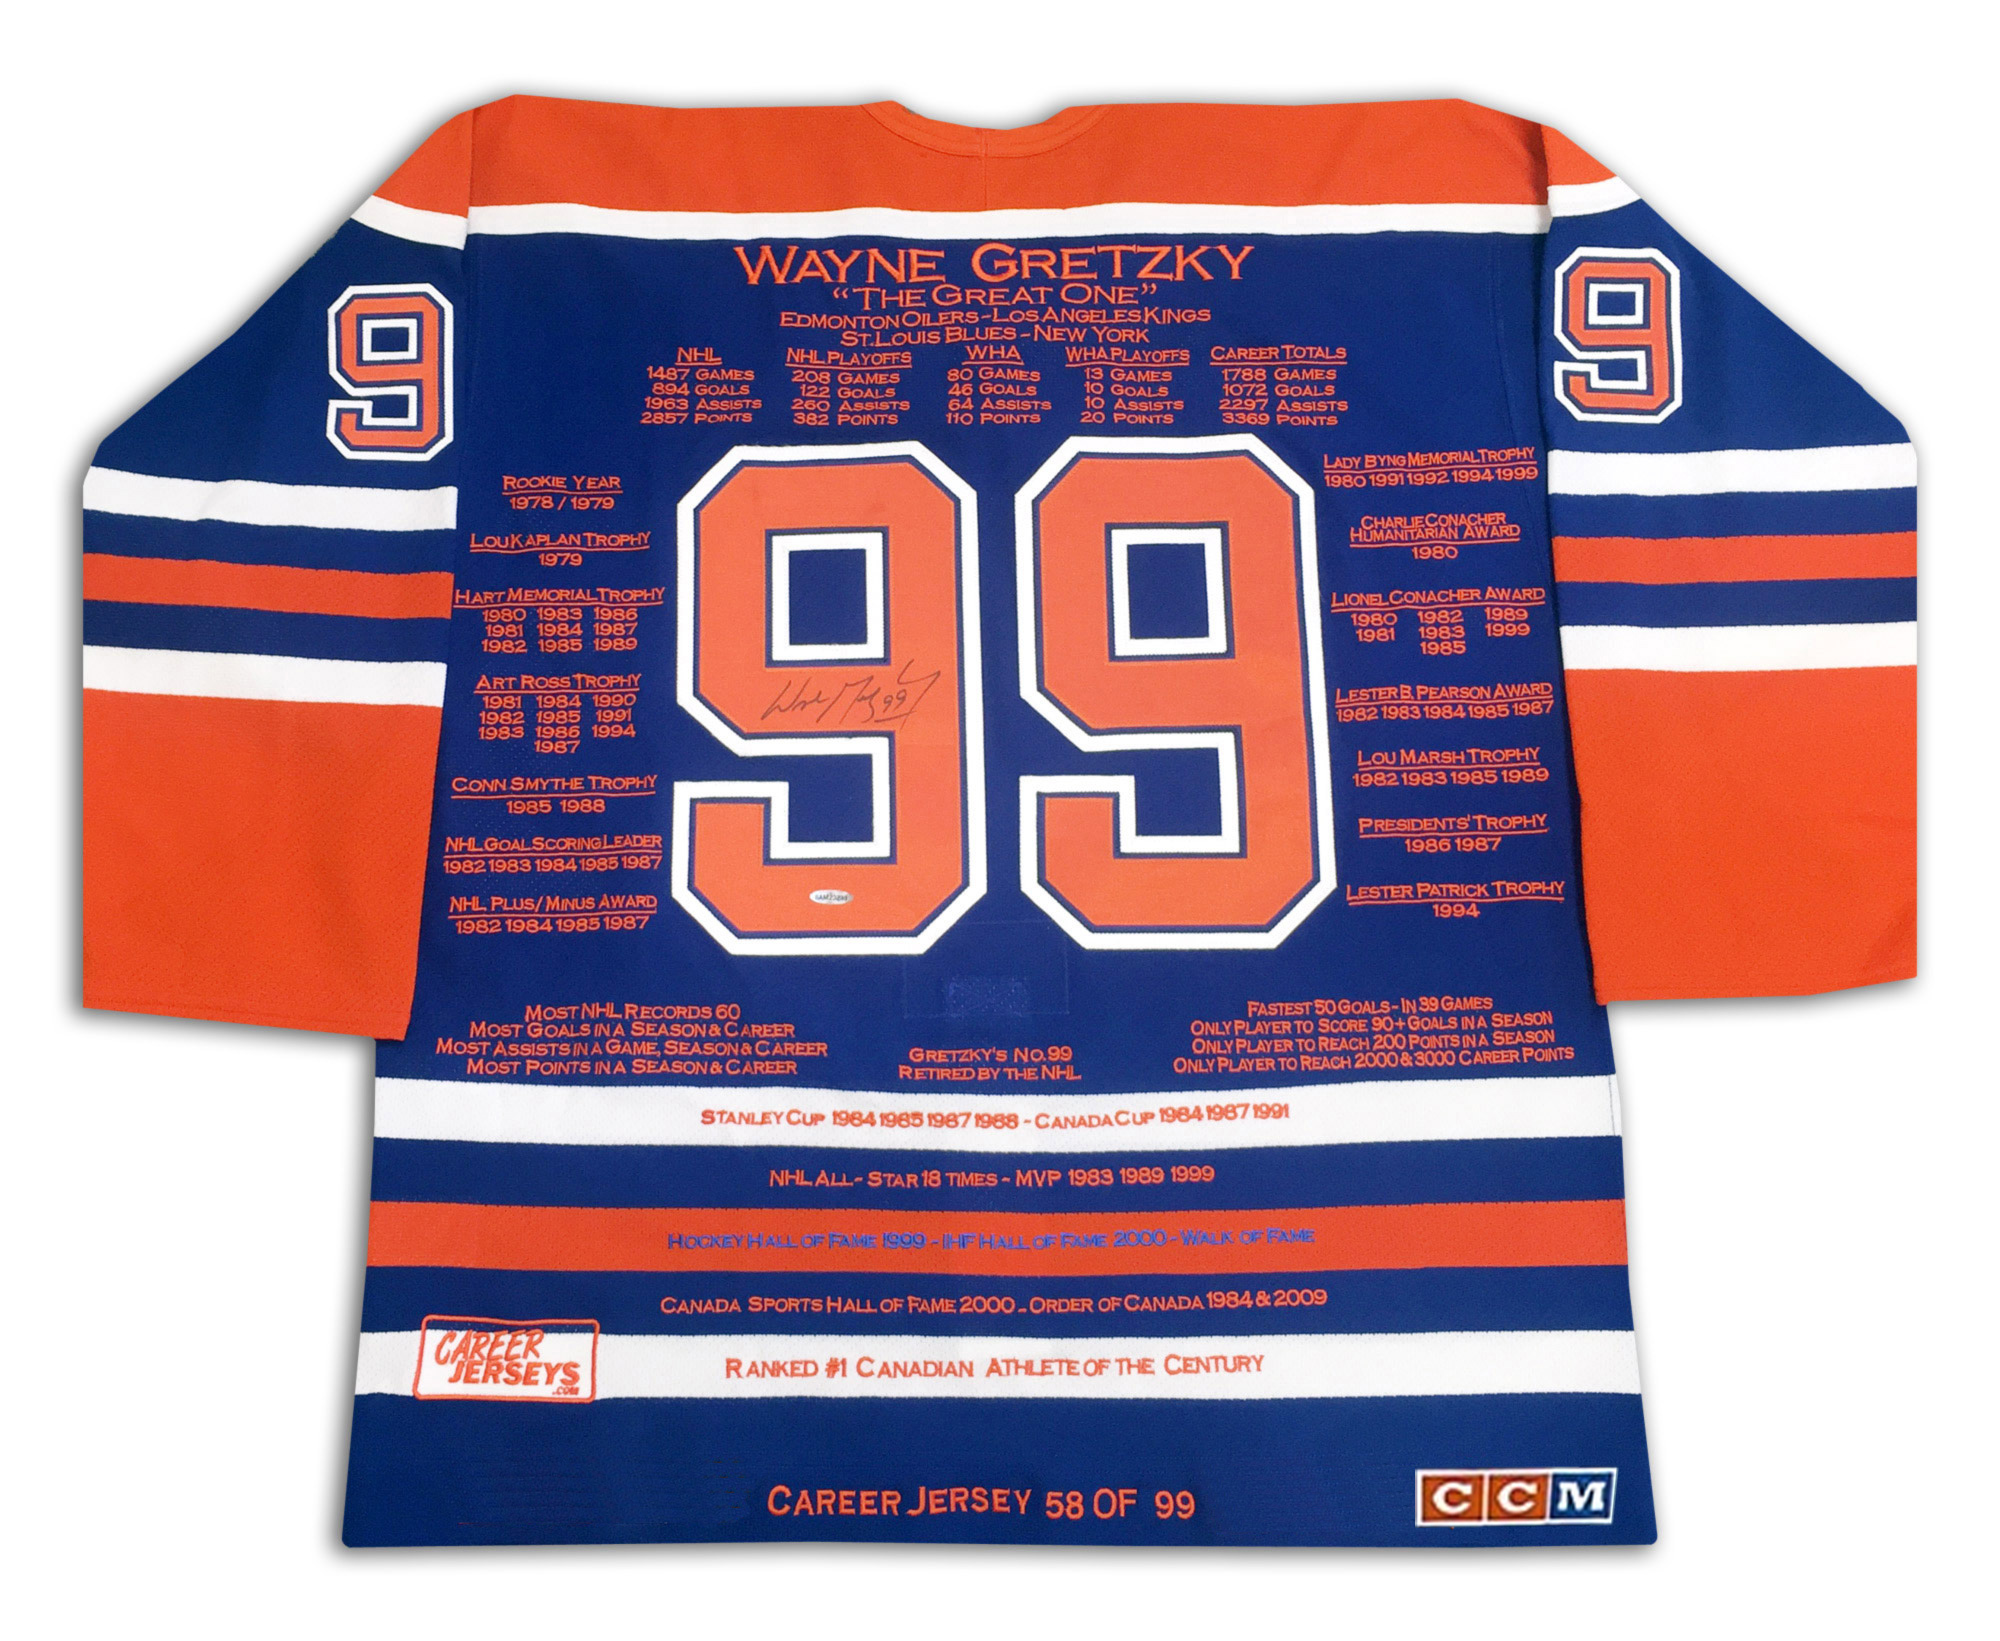 The Wayne Gretzky Career Jersey is an autographed limited edition jersey ee796479e